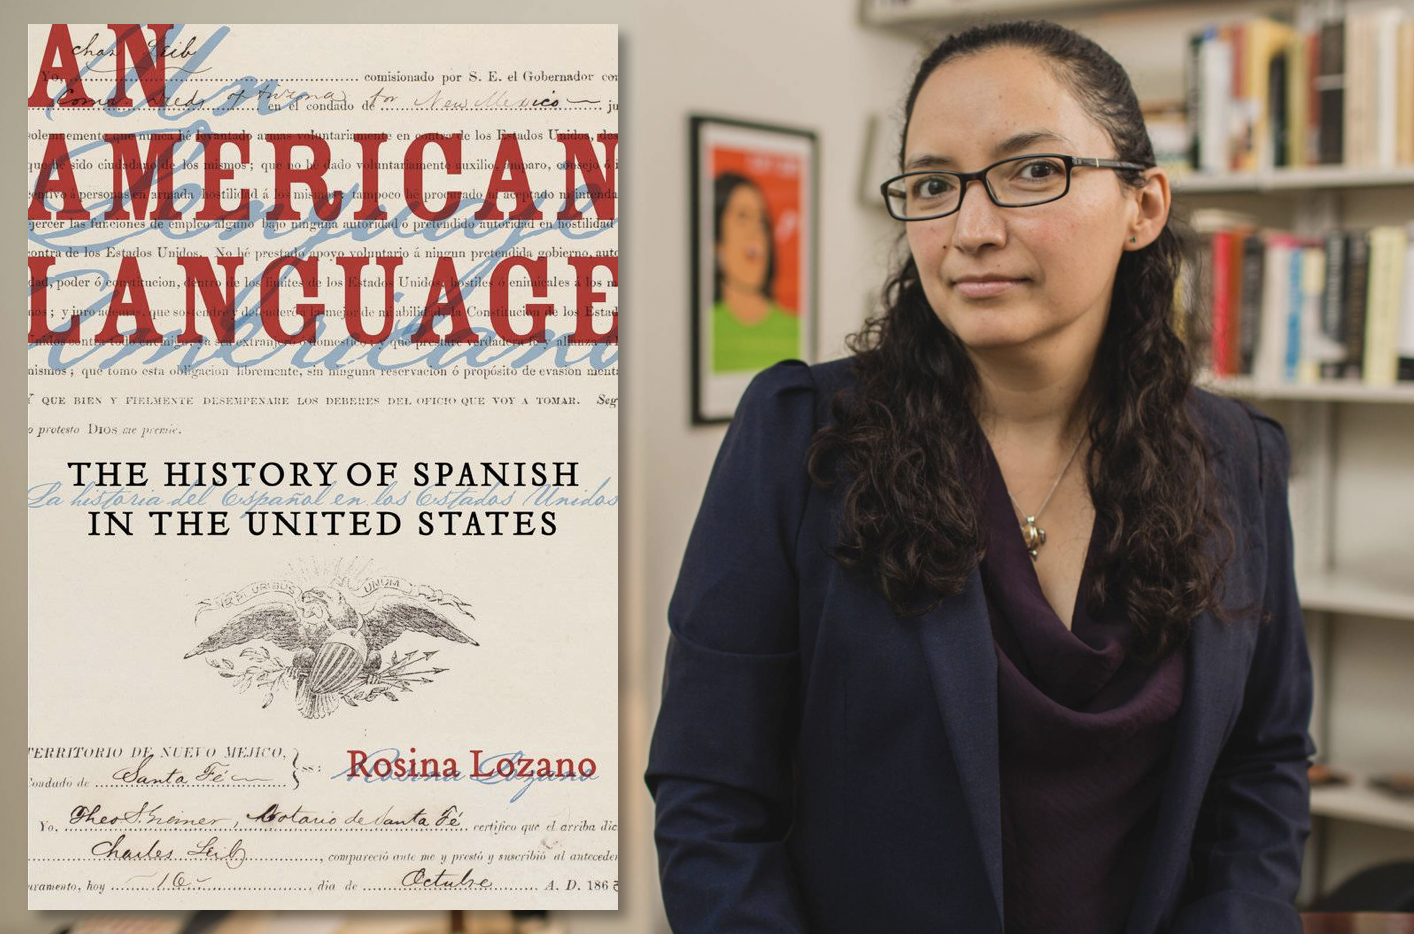 Rosina Lozano with her book An American Language: The History of Spanish in the United States. Lozano photo courtesy of Chris Fascenelli, Office of Communications. Book photo courtesy of University of California Press.